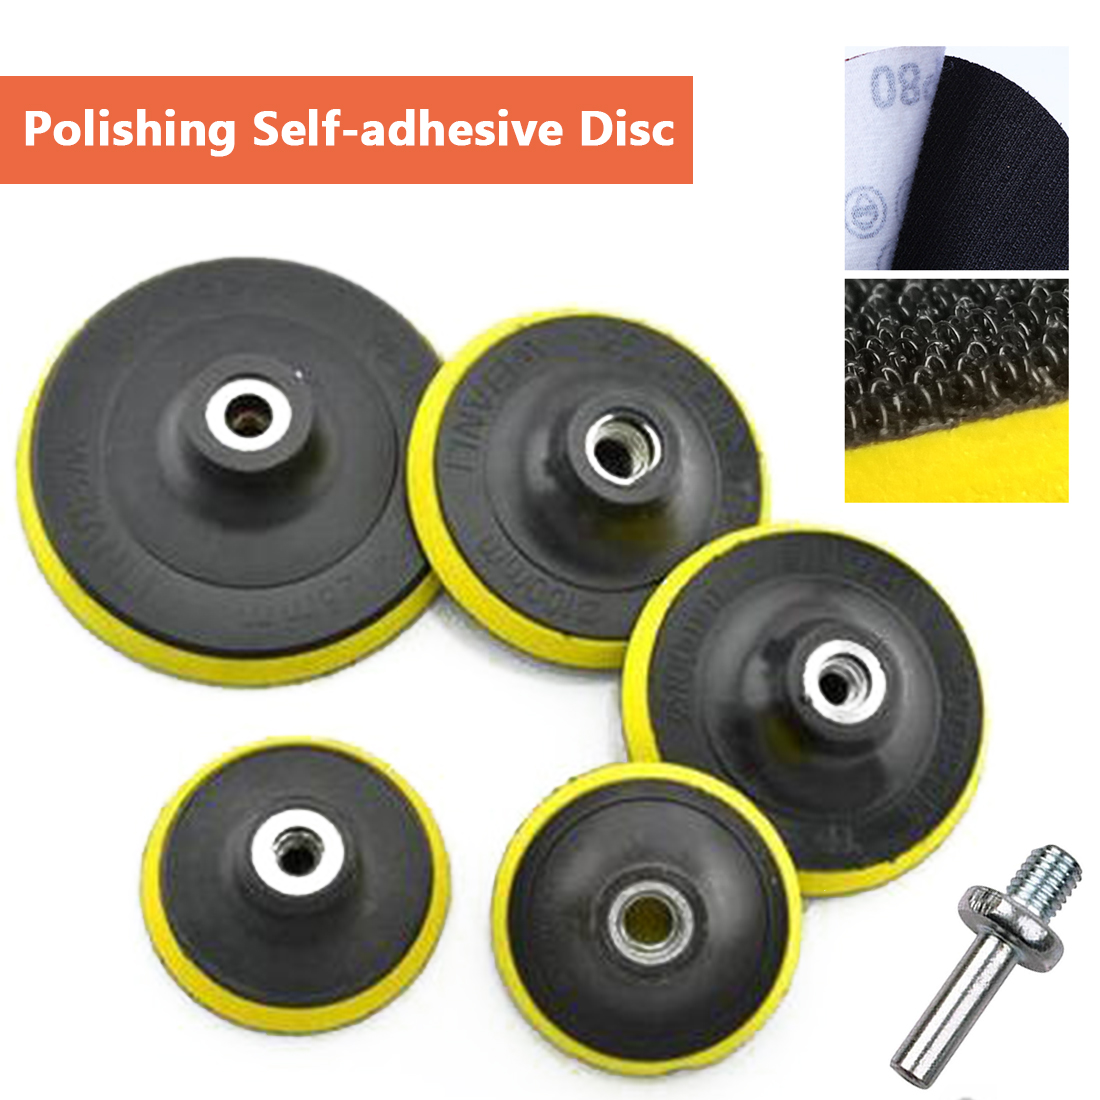 "Self-adhesive Polishing Pad 3""/4""/5""/6""/7"" Sandpaper Sucker Polishing Disc For Electric Grinder Polisher Tools"